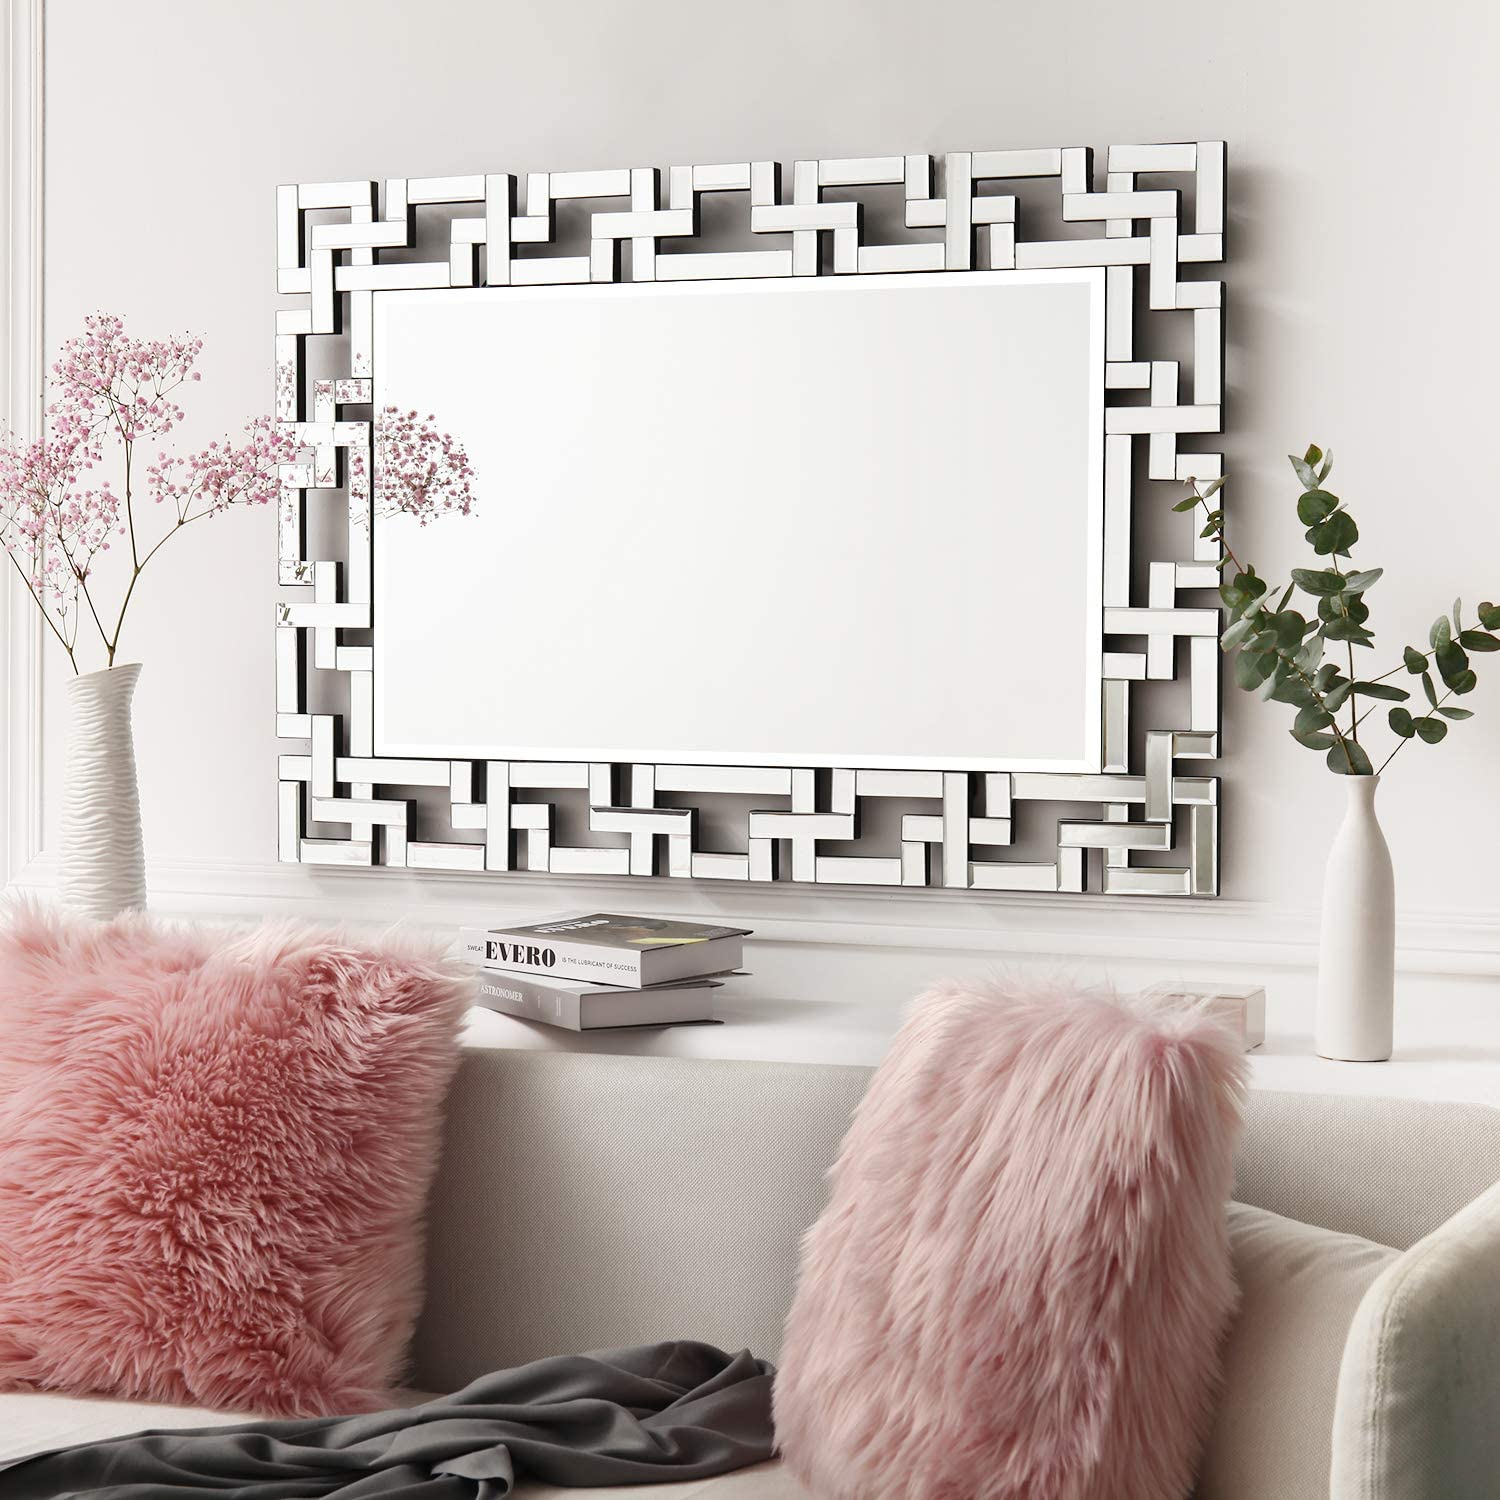 Art Decorative Wall Mirrors Large Grecian Venetian Mirror For Hotel Home Vanity Sliver Mirror 27 5 W X39 5 H Kitchen Dining